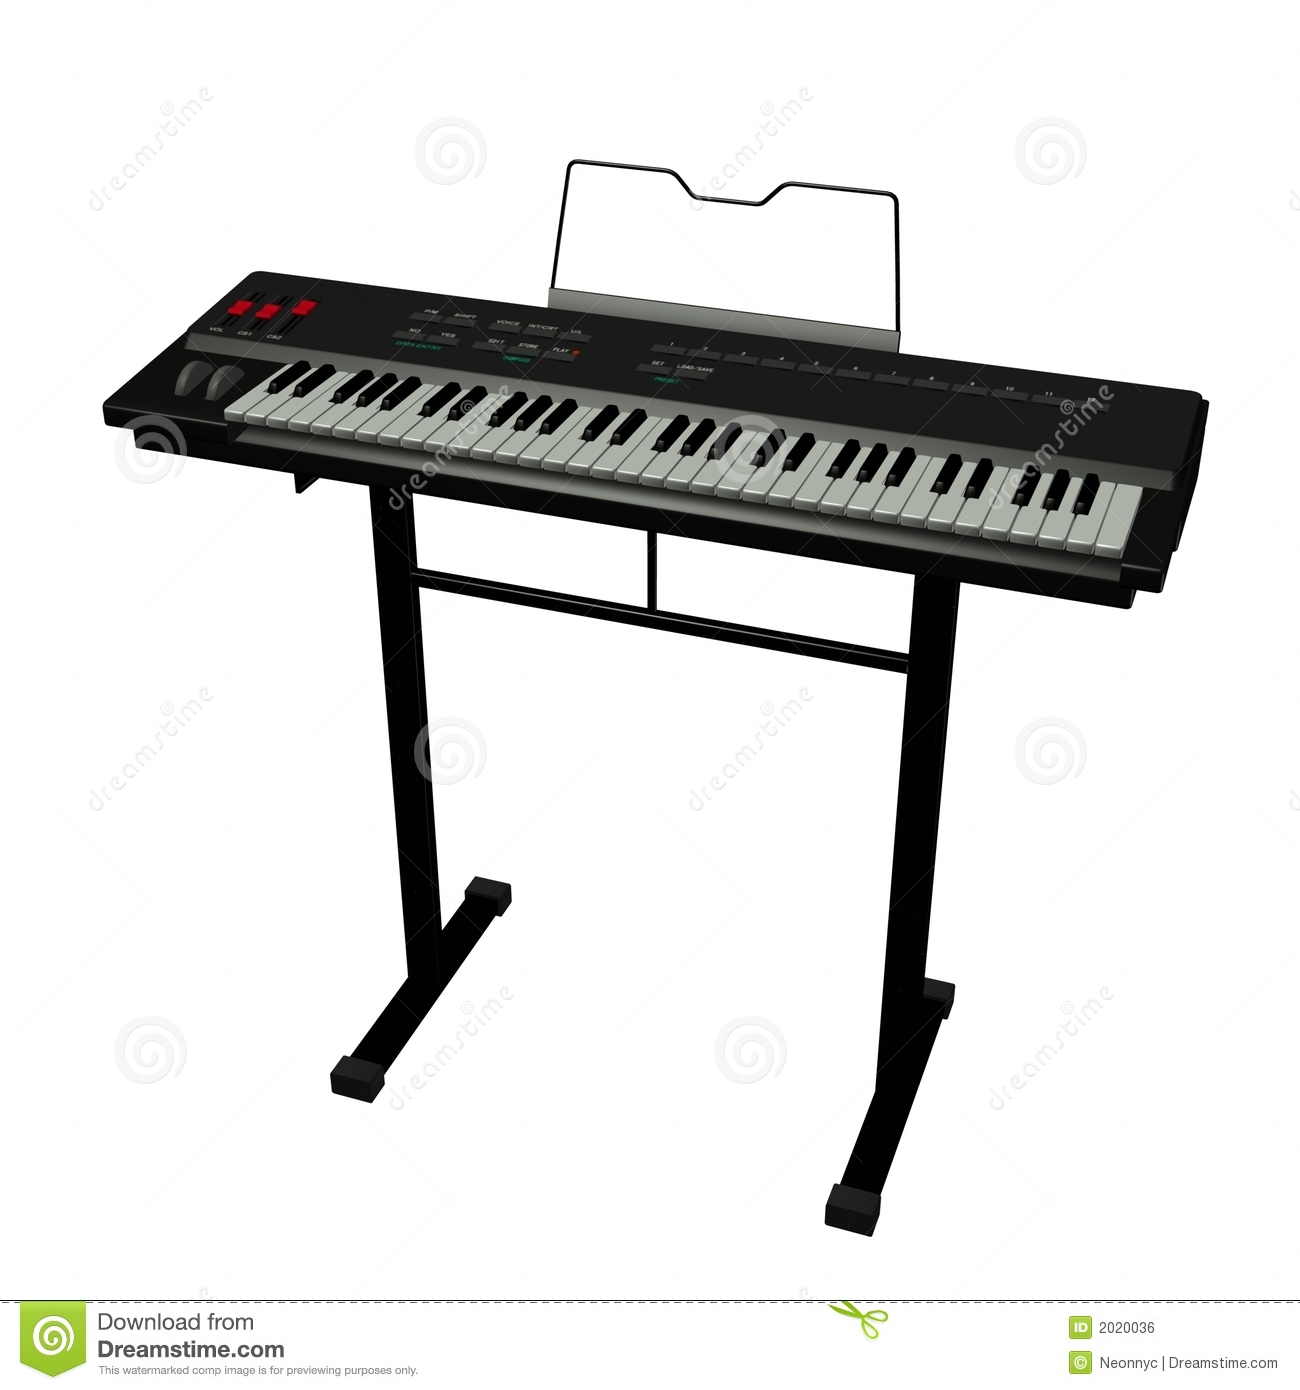 Digital illustration of electric keyboard/midi against a white ...